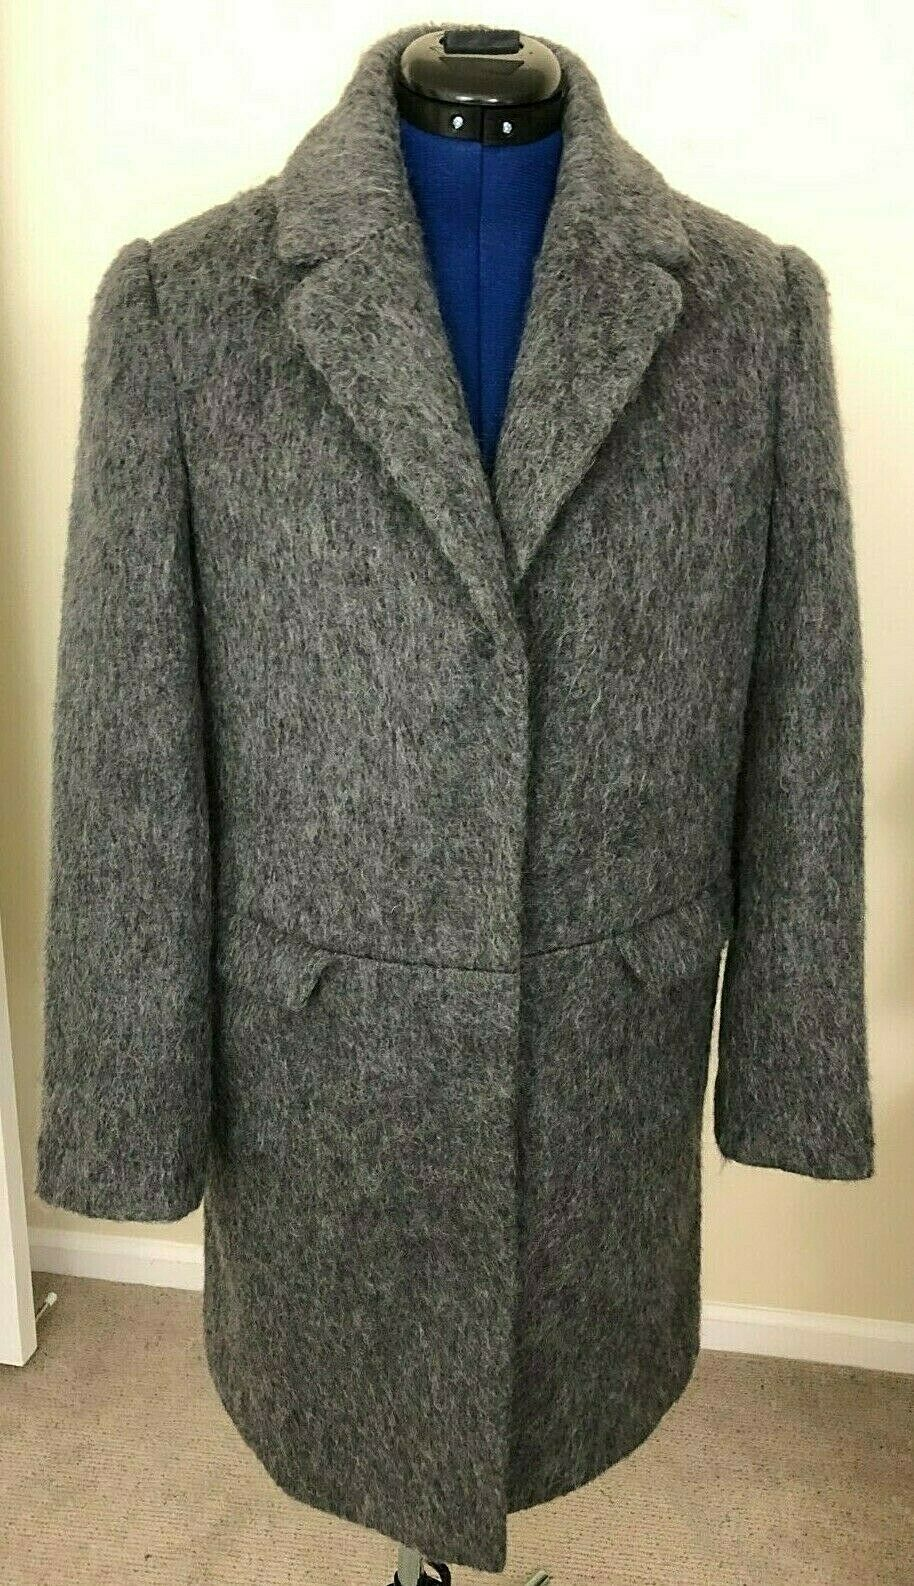 ASOS Size 2 British Women's Outerwear Coat Lined Wool Blend Gray Pockets Snaps